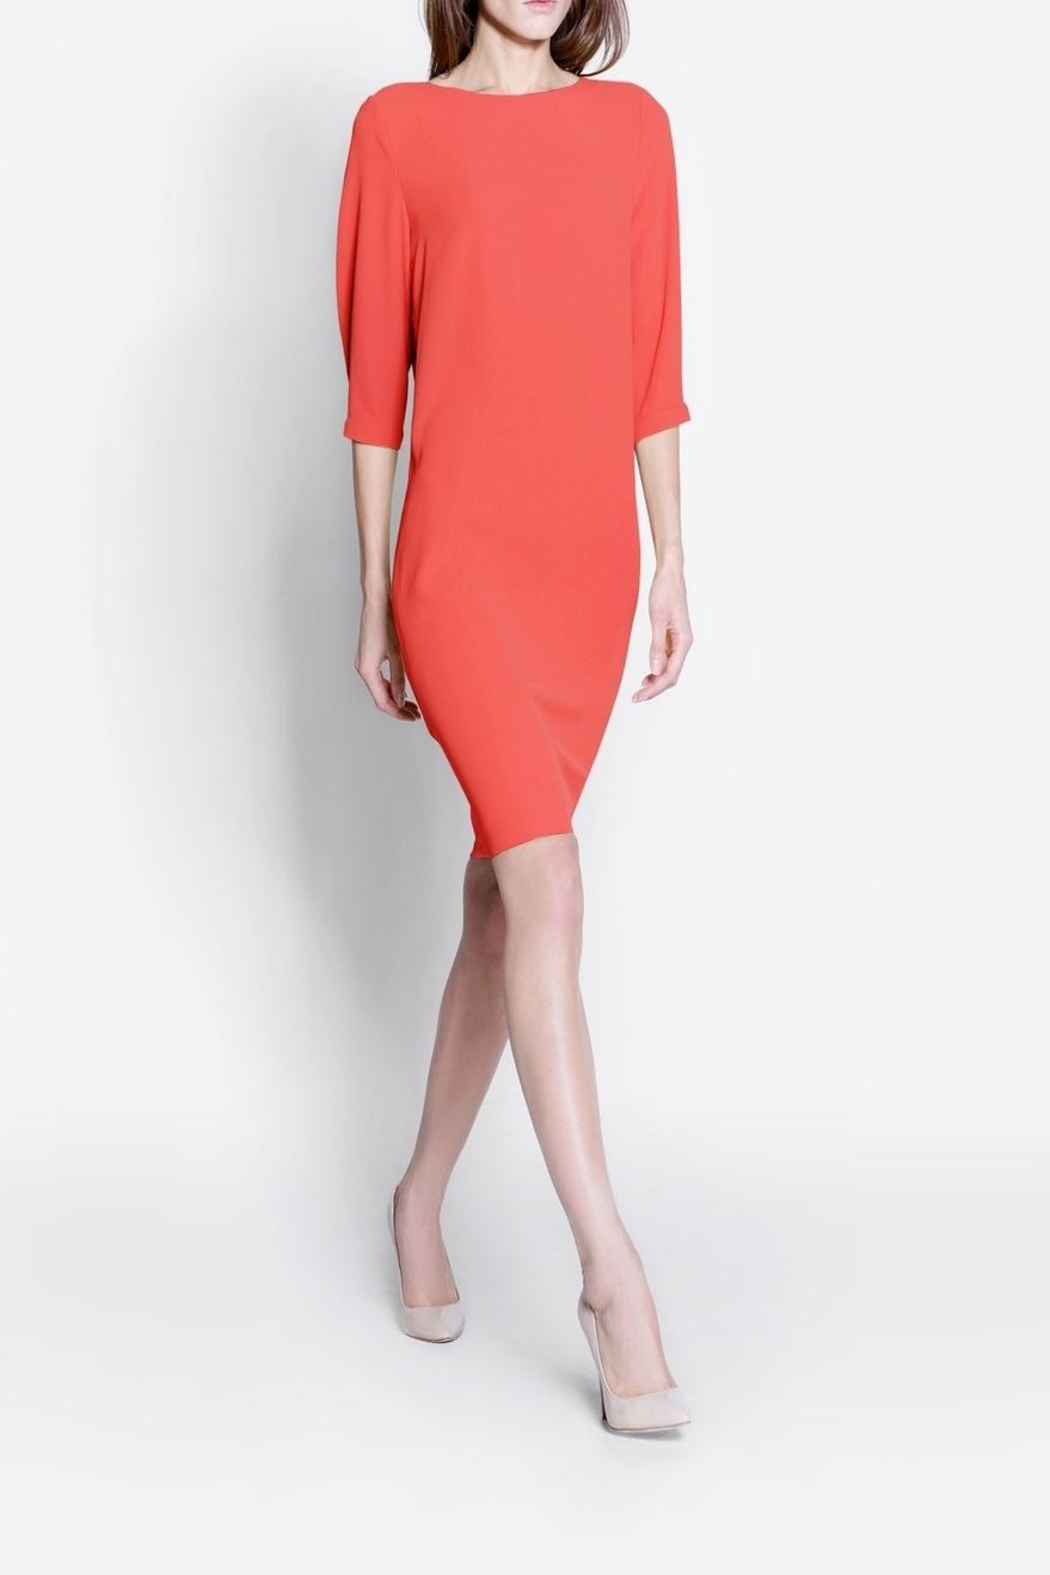 CYRILLE GASSILINE A Line Dress - Main Image